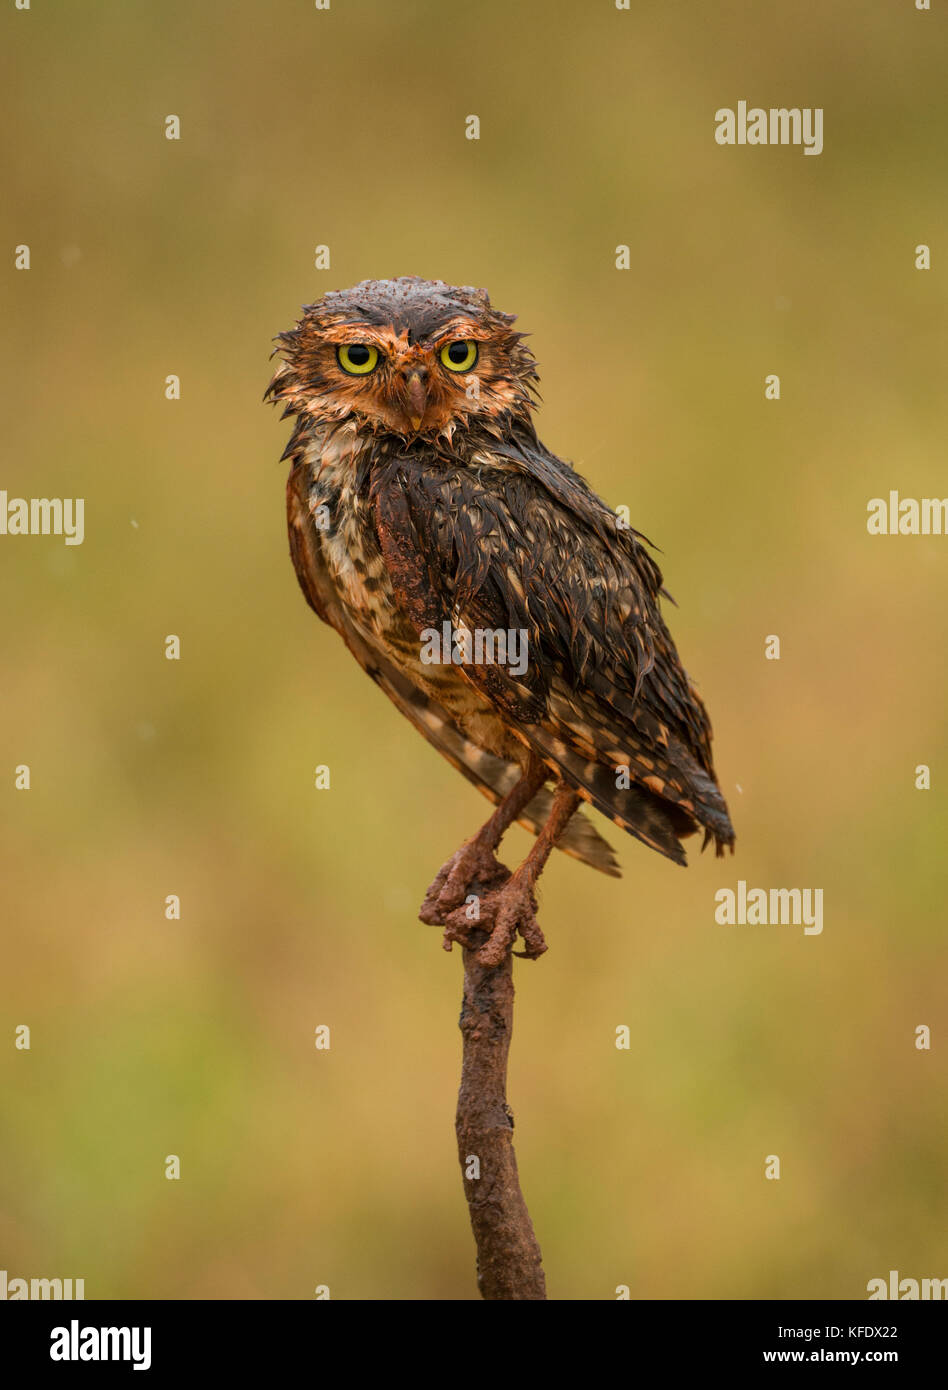 A muddy and soaking wet Burrowing Owl (Athene cunicularia) from Central Brazil - Stock Image